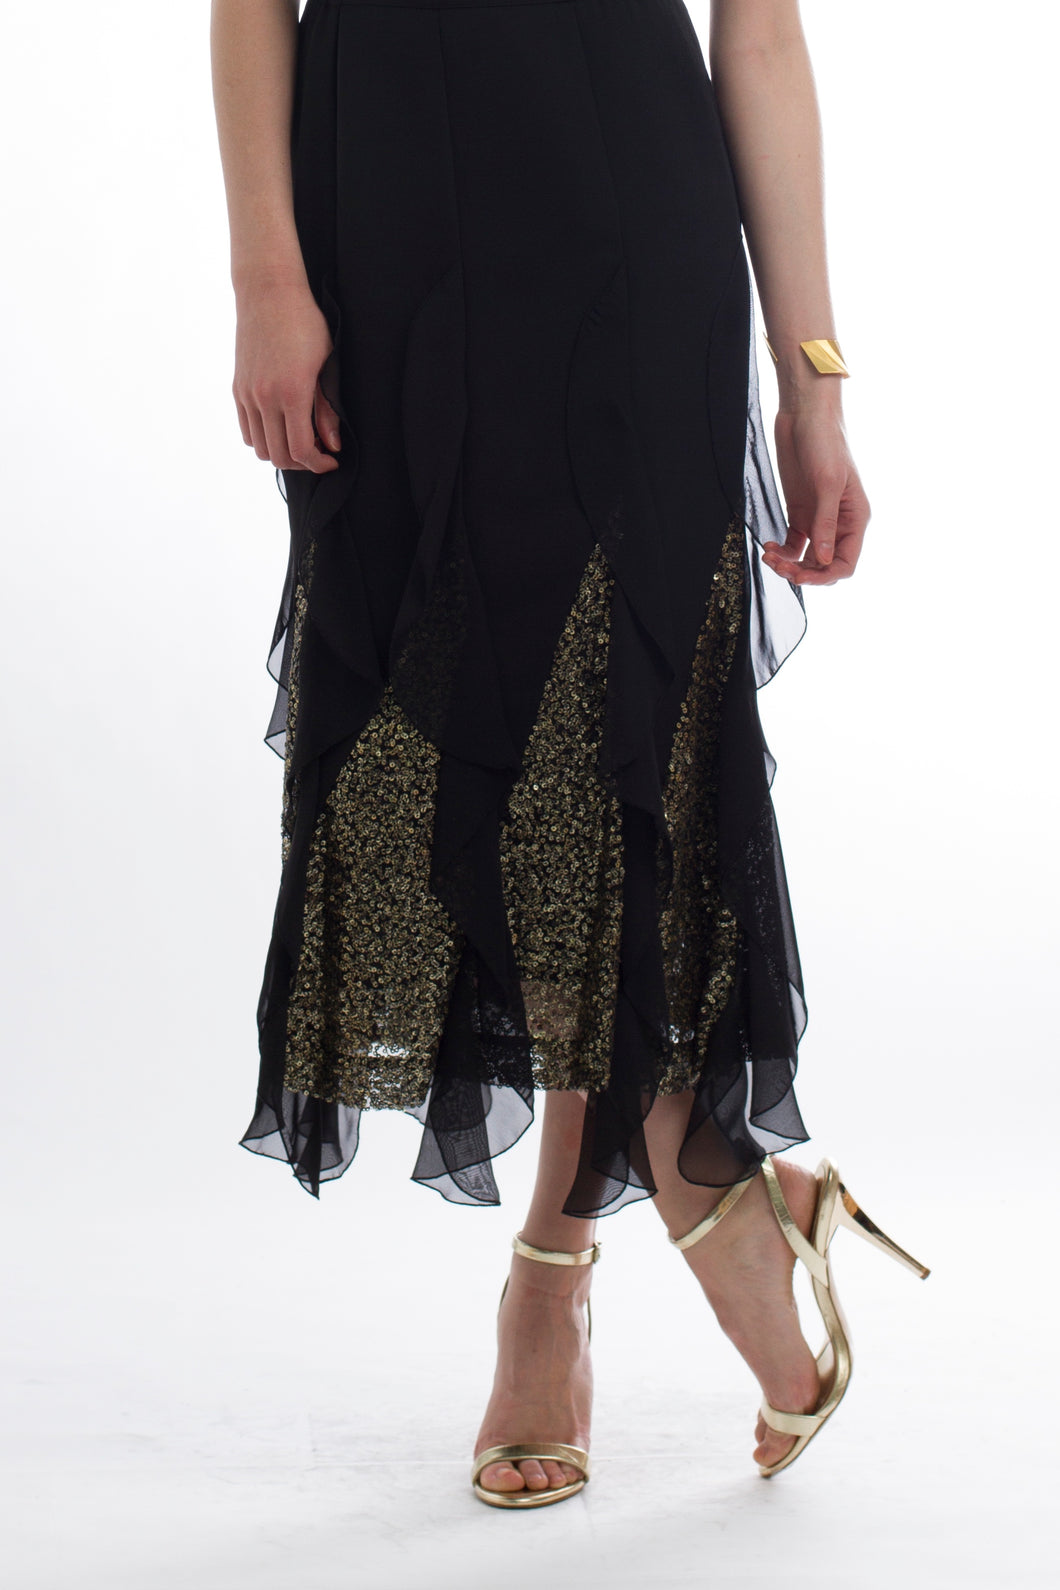 Black and Gold Sequin Ruffle Skirt 1254